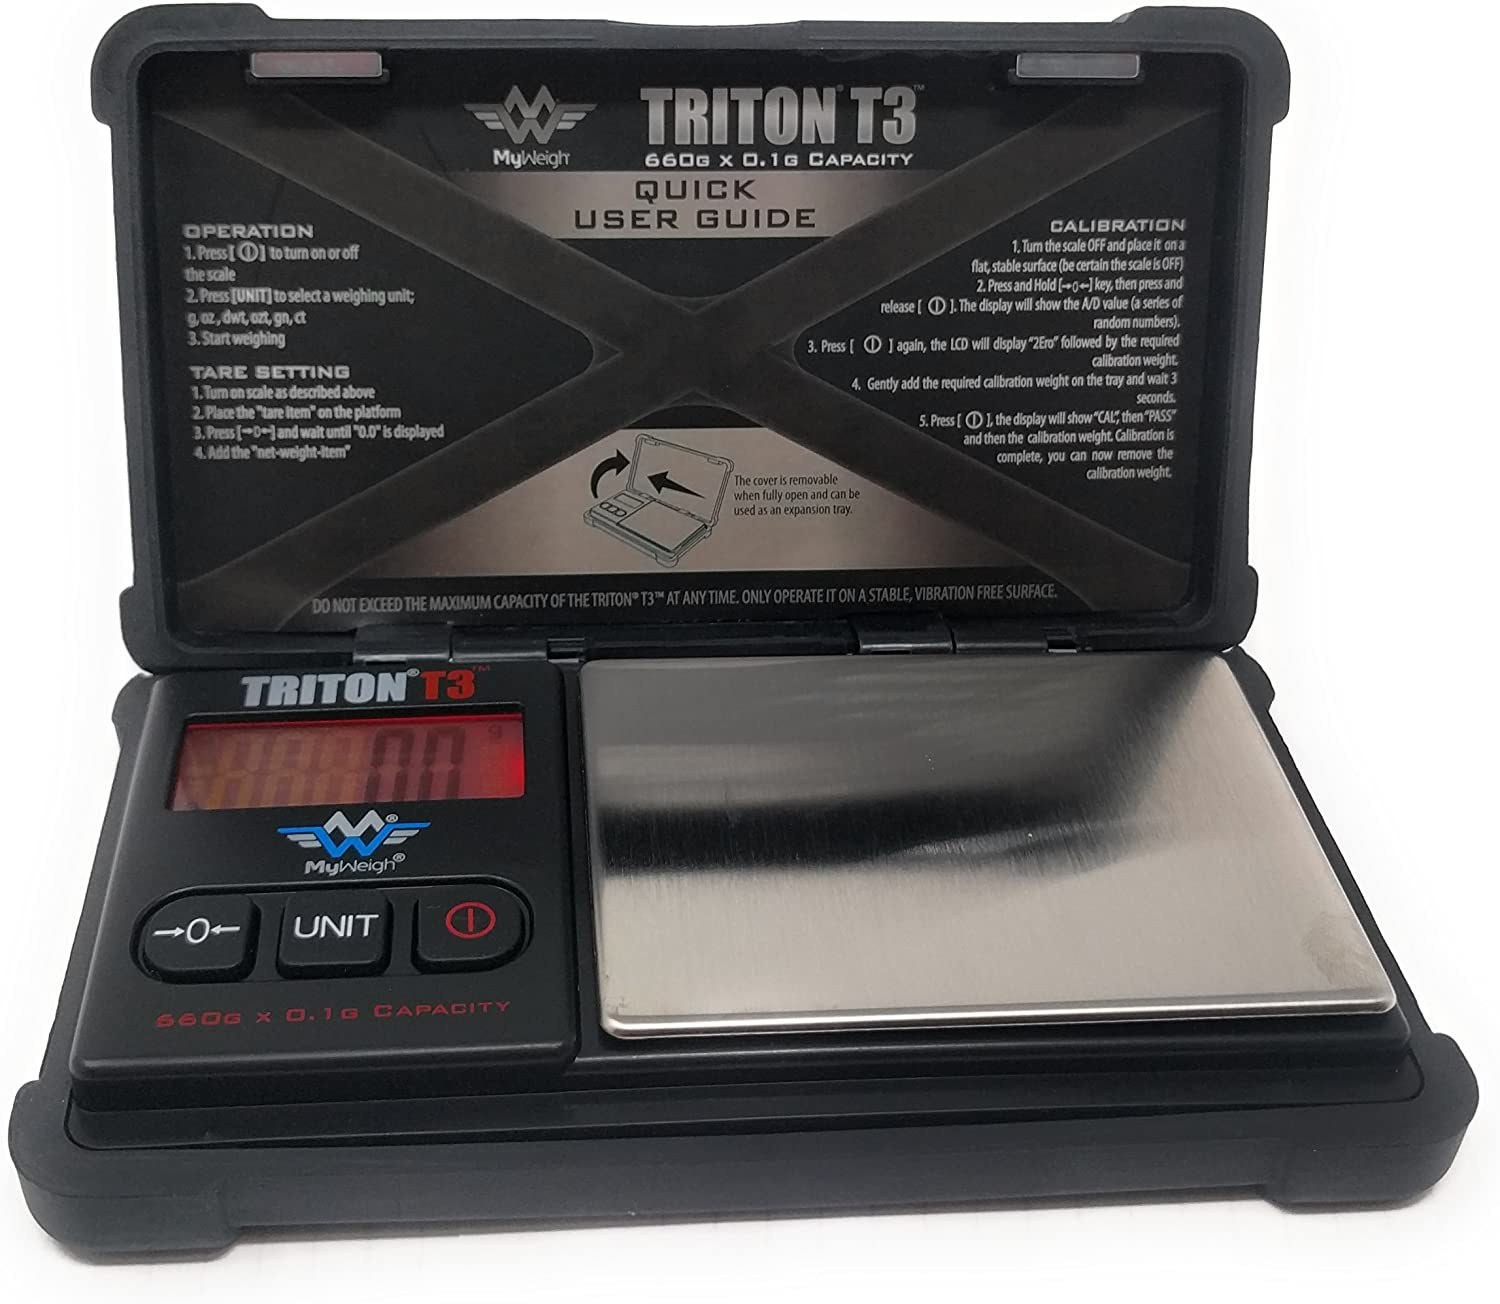 ONE by My Weigh Triton T3 400g x 0.01g Digital Scale w//Rubber Case TOUGH